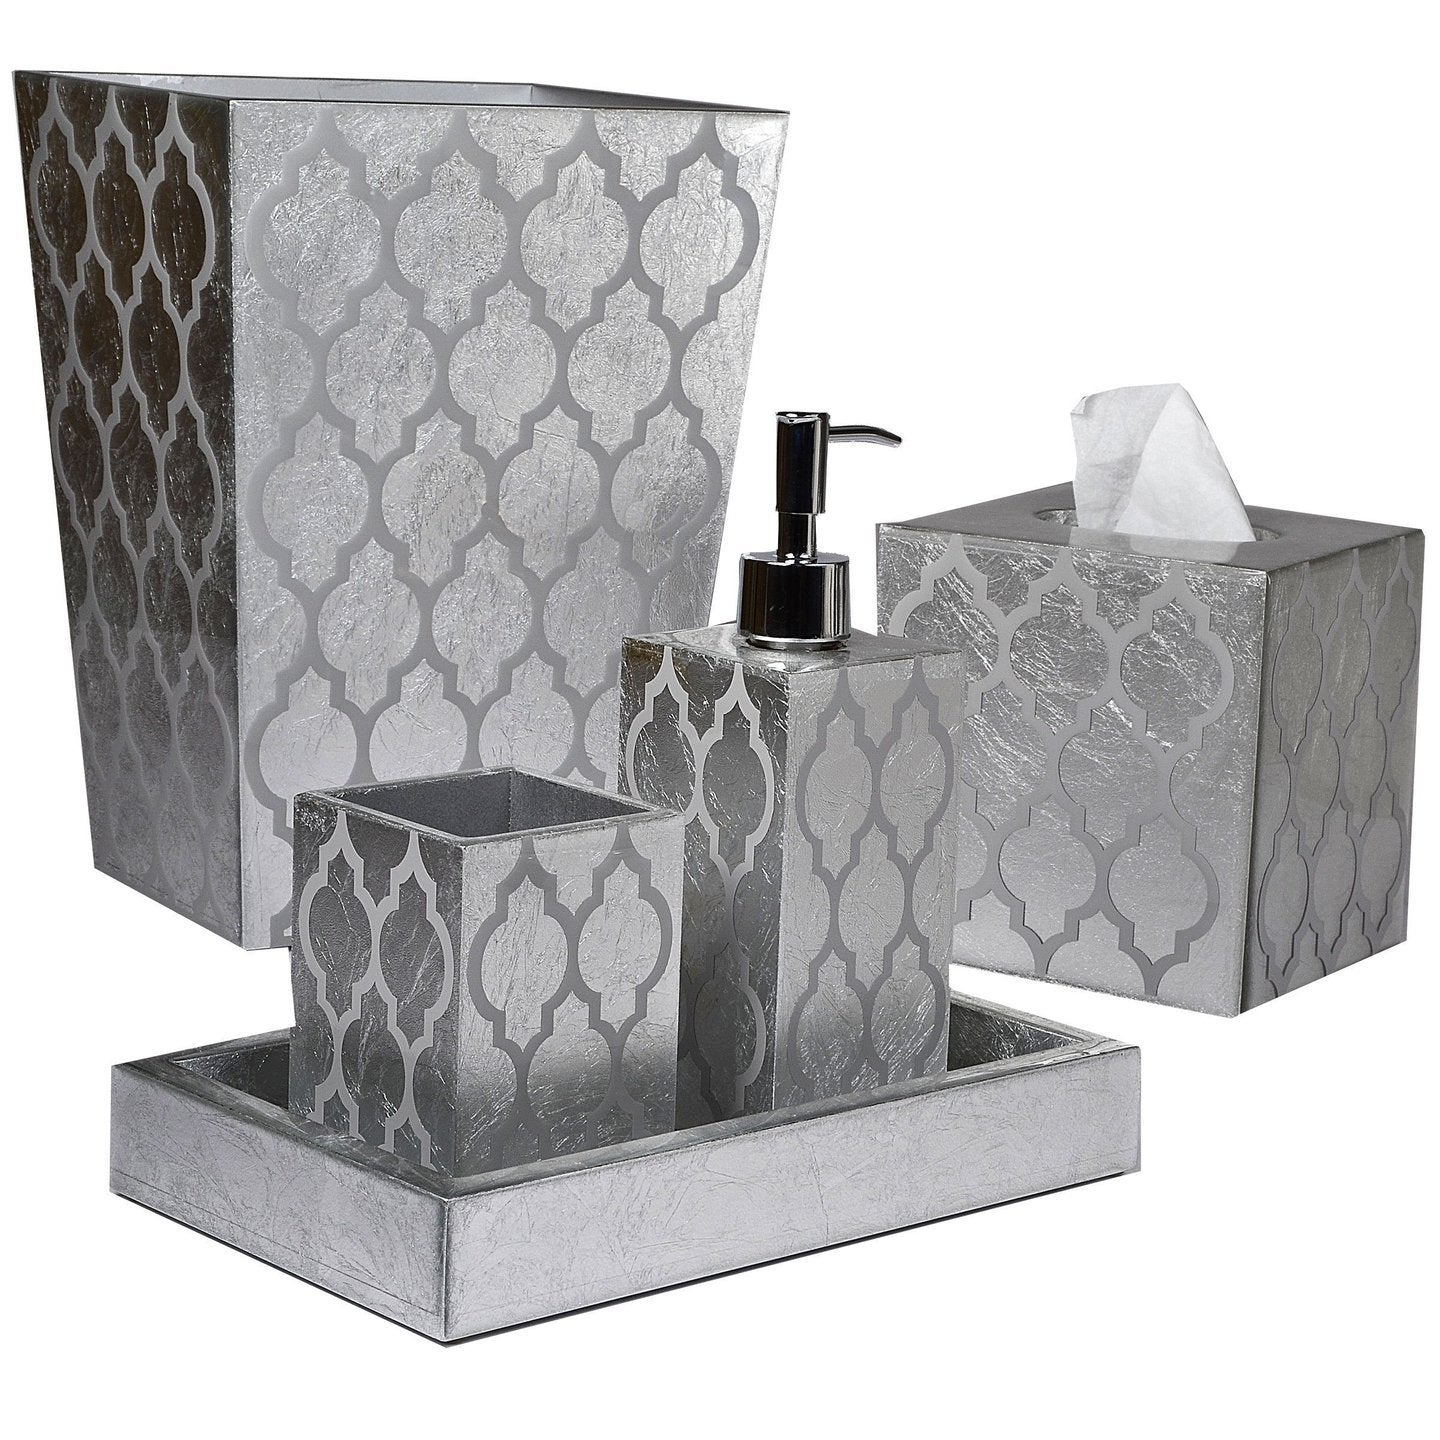 Arabesque Silver Bath Accessories by Mike + Ally